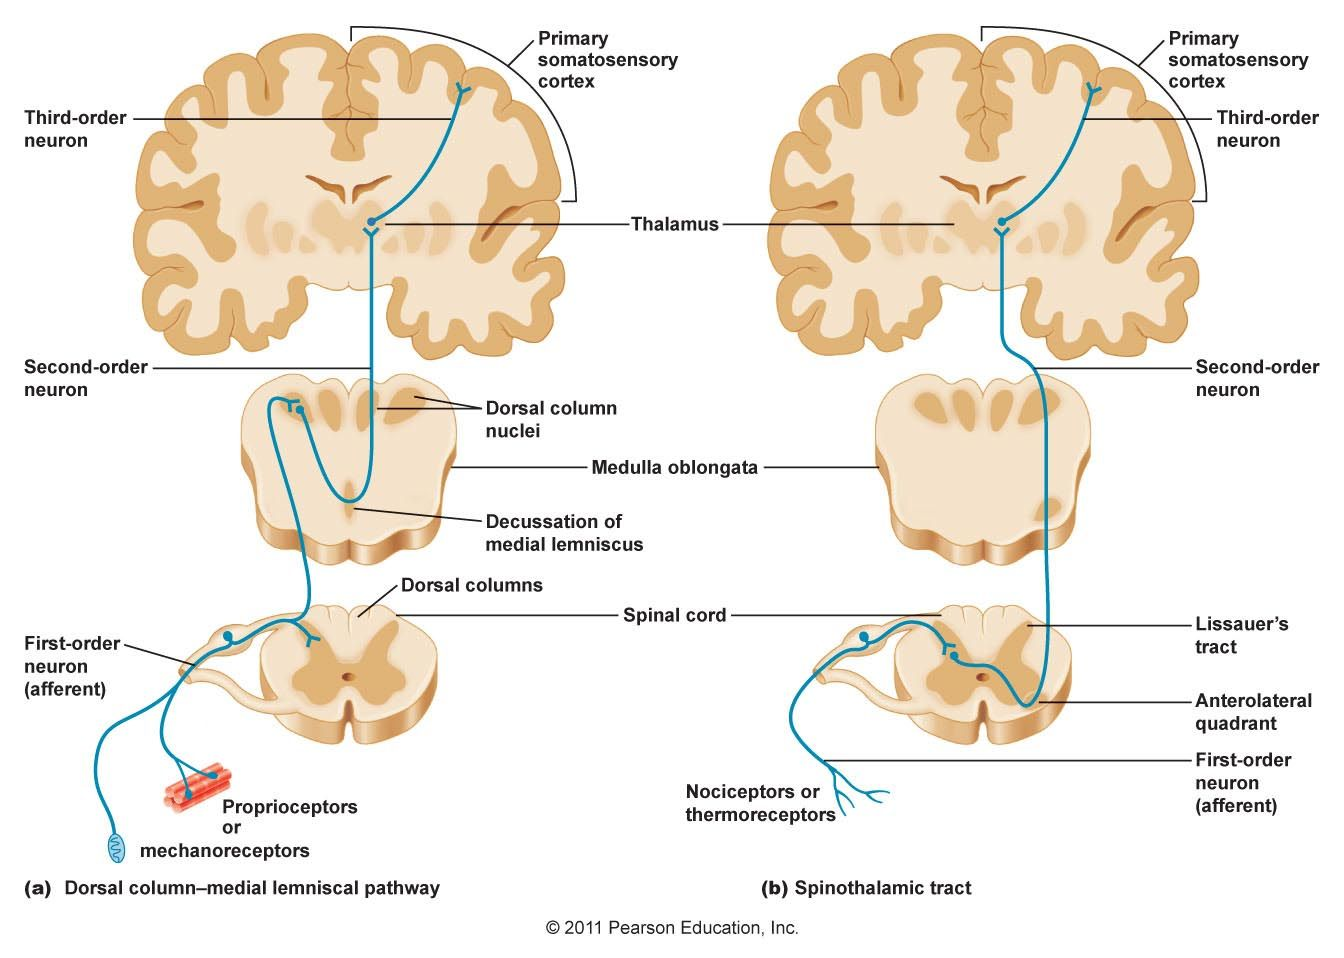 dorsal column medial lemnisclal pathway and spinothalamic [ 1344 x 958 Pixel ]